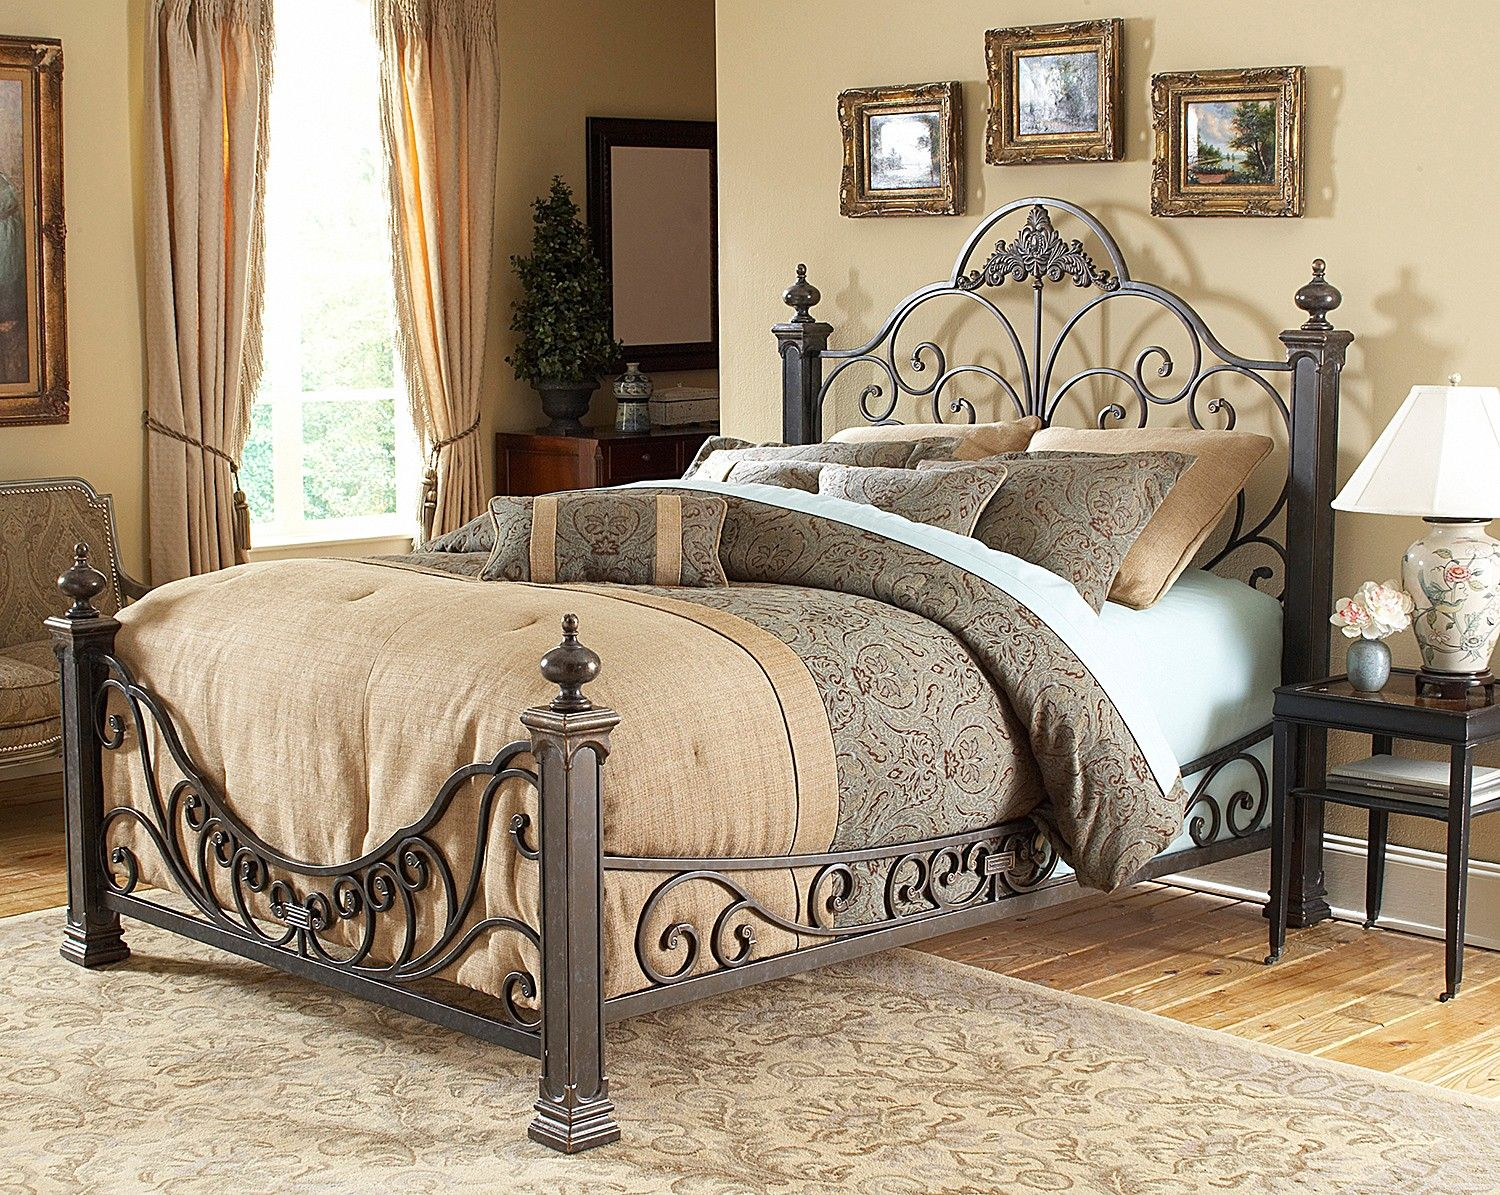 Talon Bedroom King Bed Leons Love This One Very Elegant Without Over Statement Baroque Bed Bed Styling Iron Bed